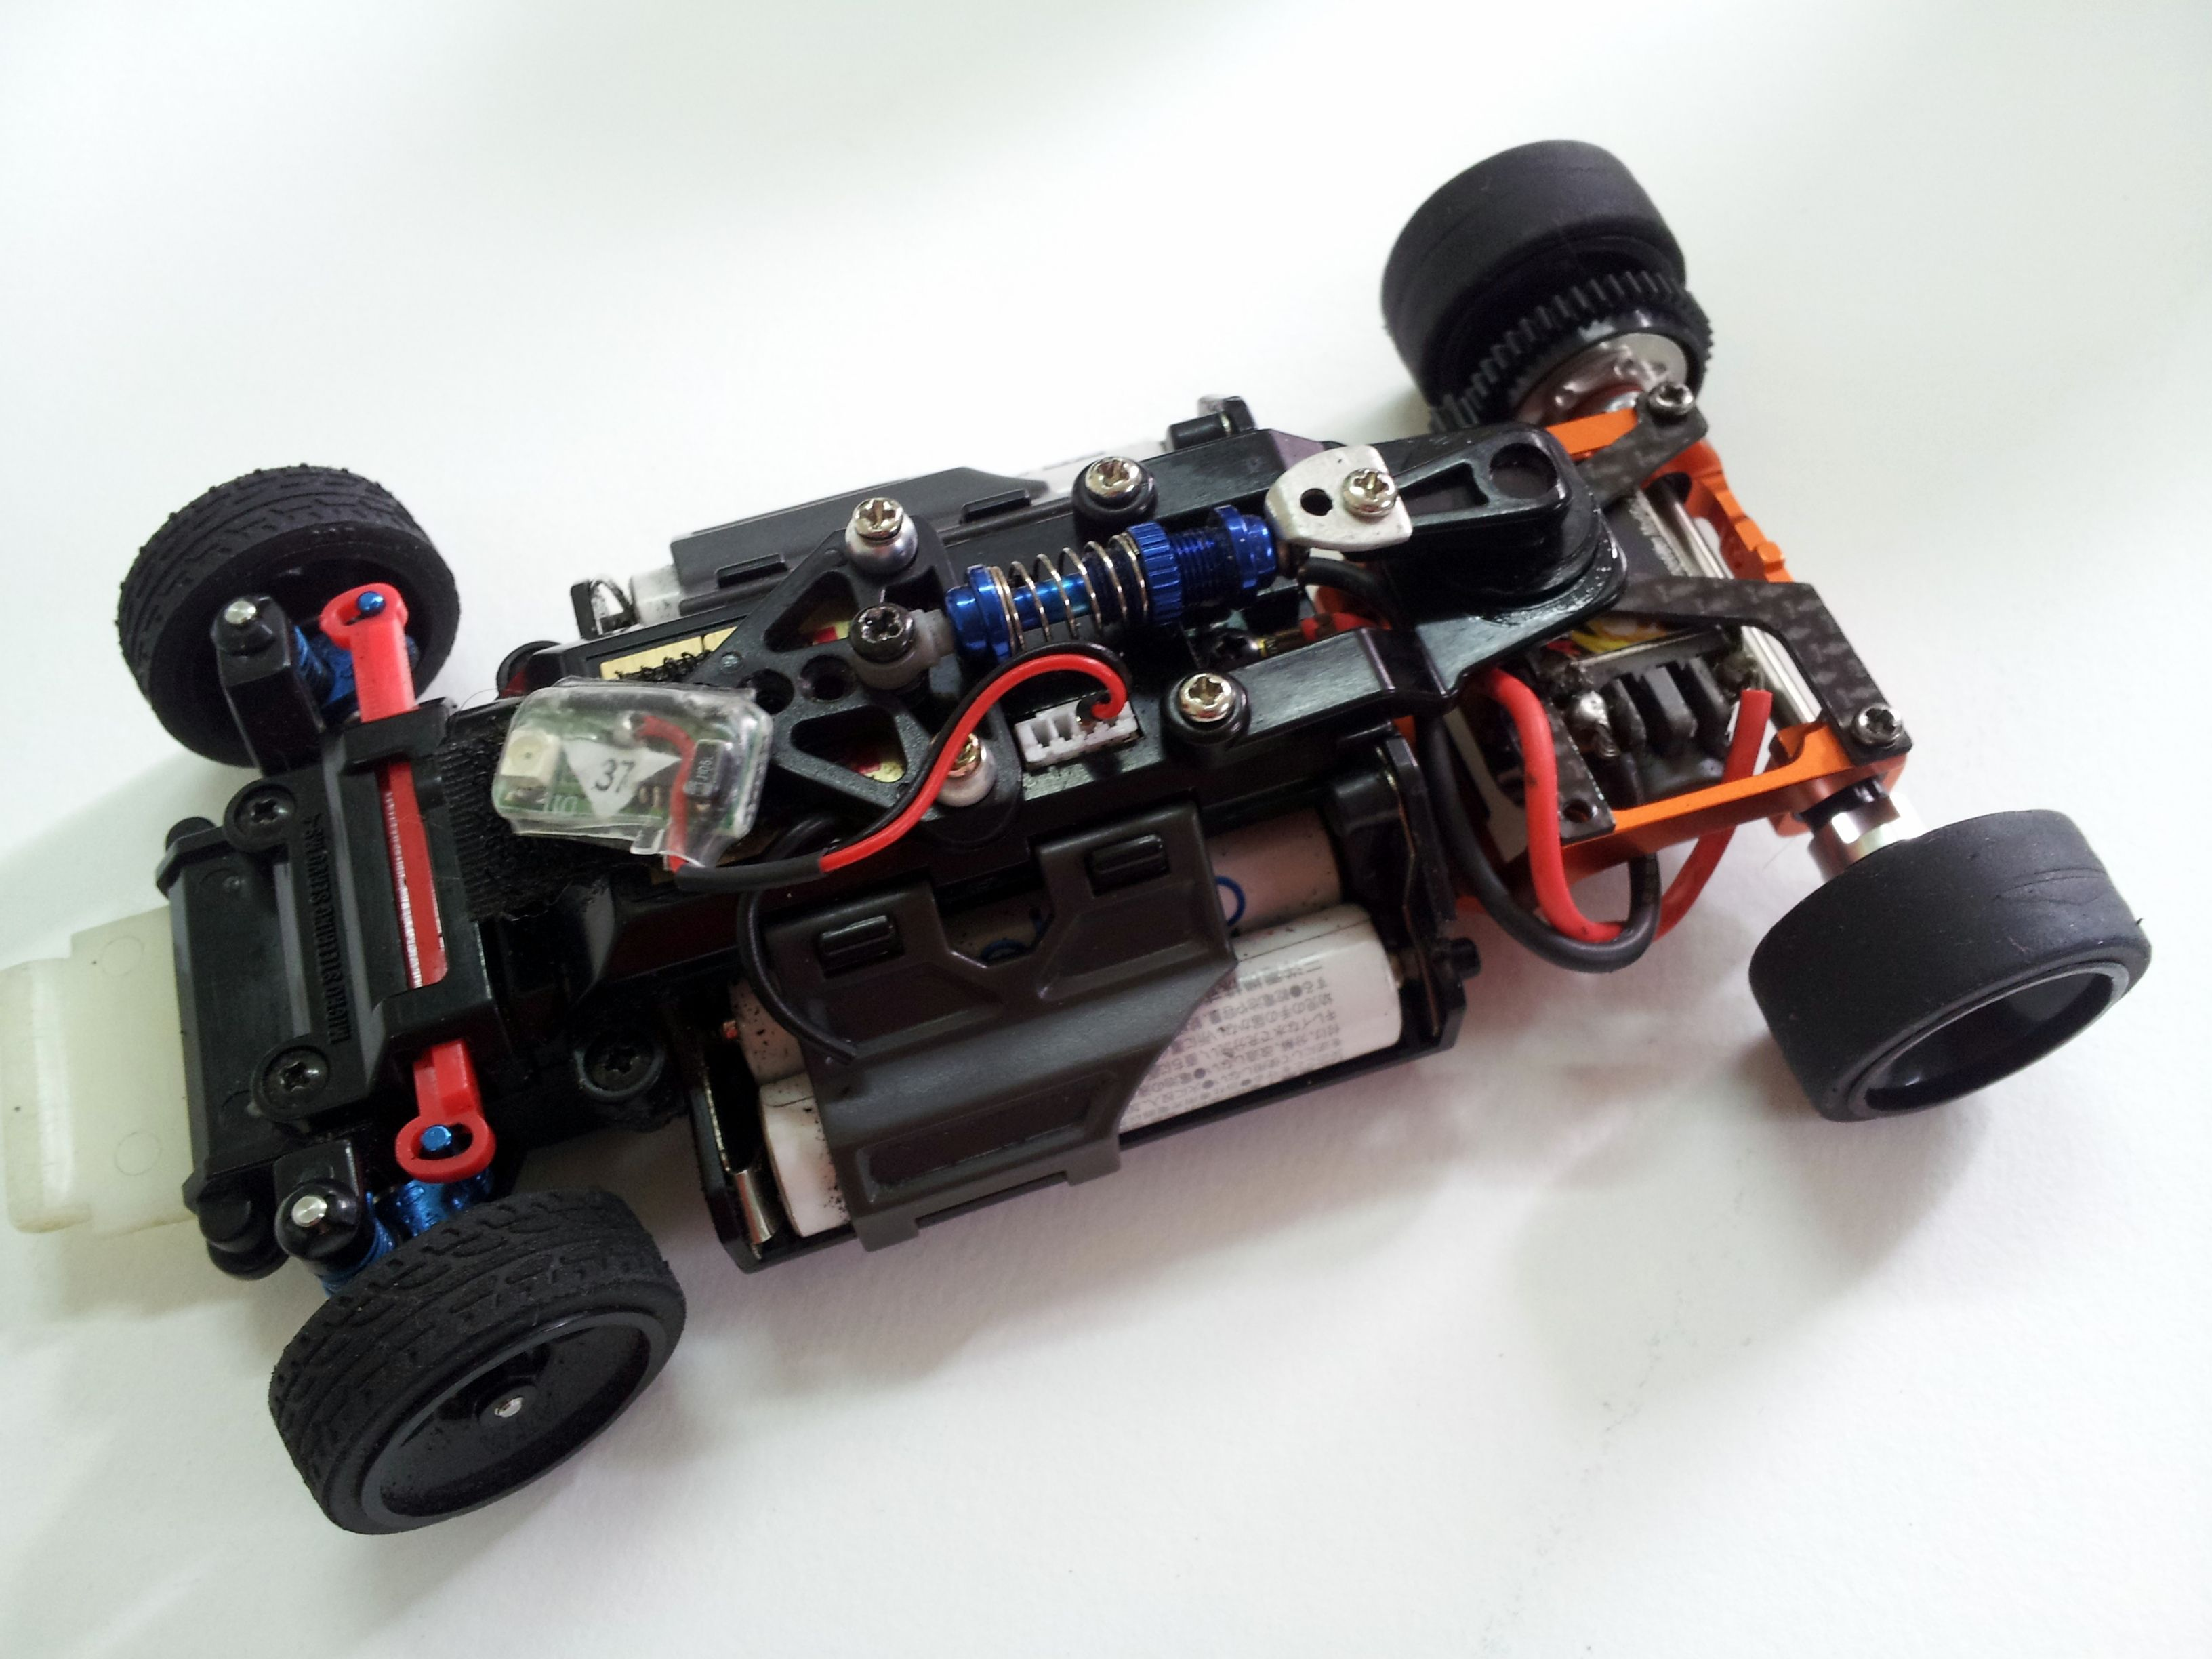 Orlandoo Ford F150 & Jeep Build parison Chassis RC Micro Cars Crawler Scaler Pinterest